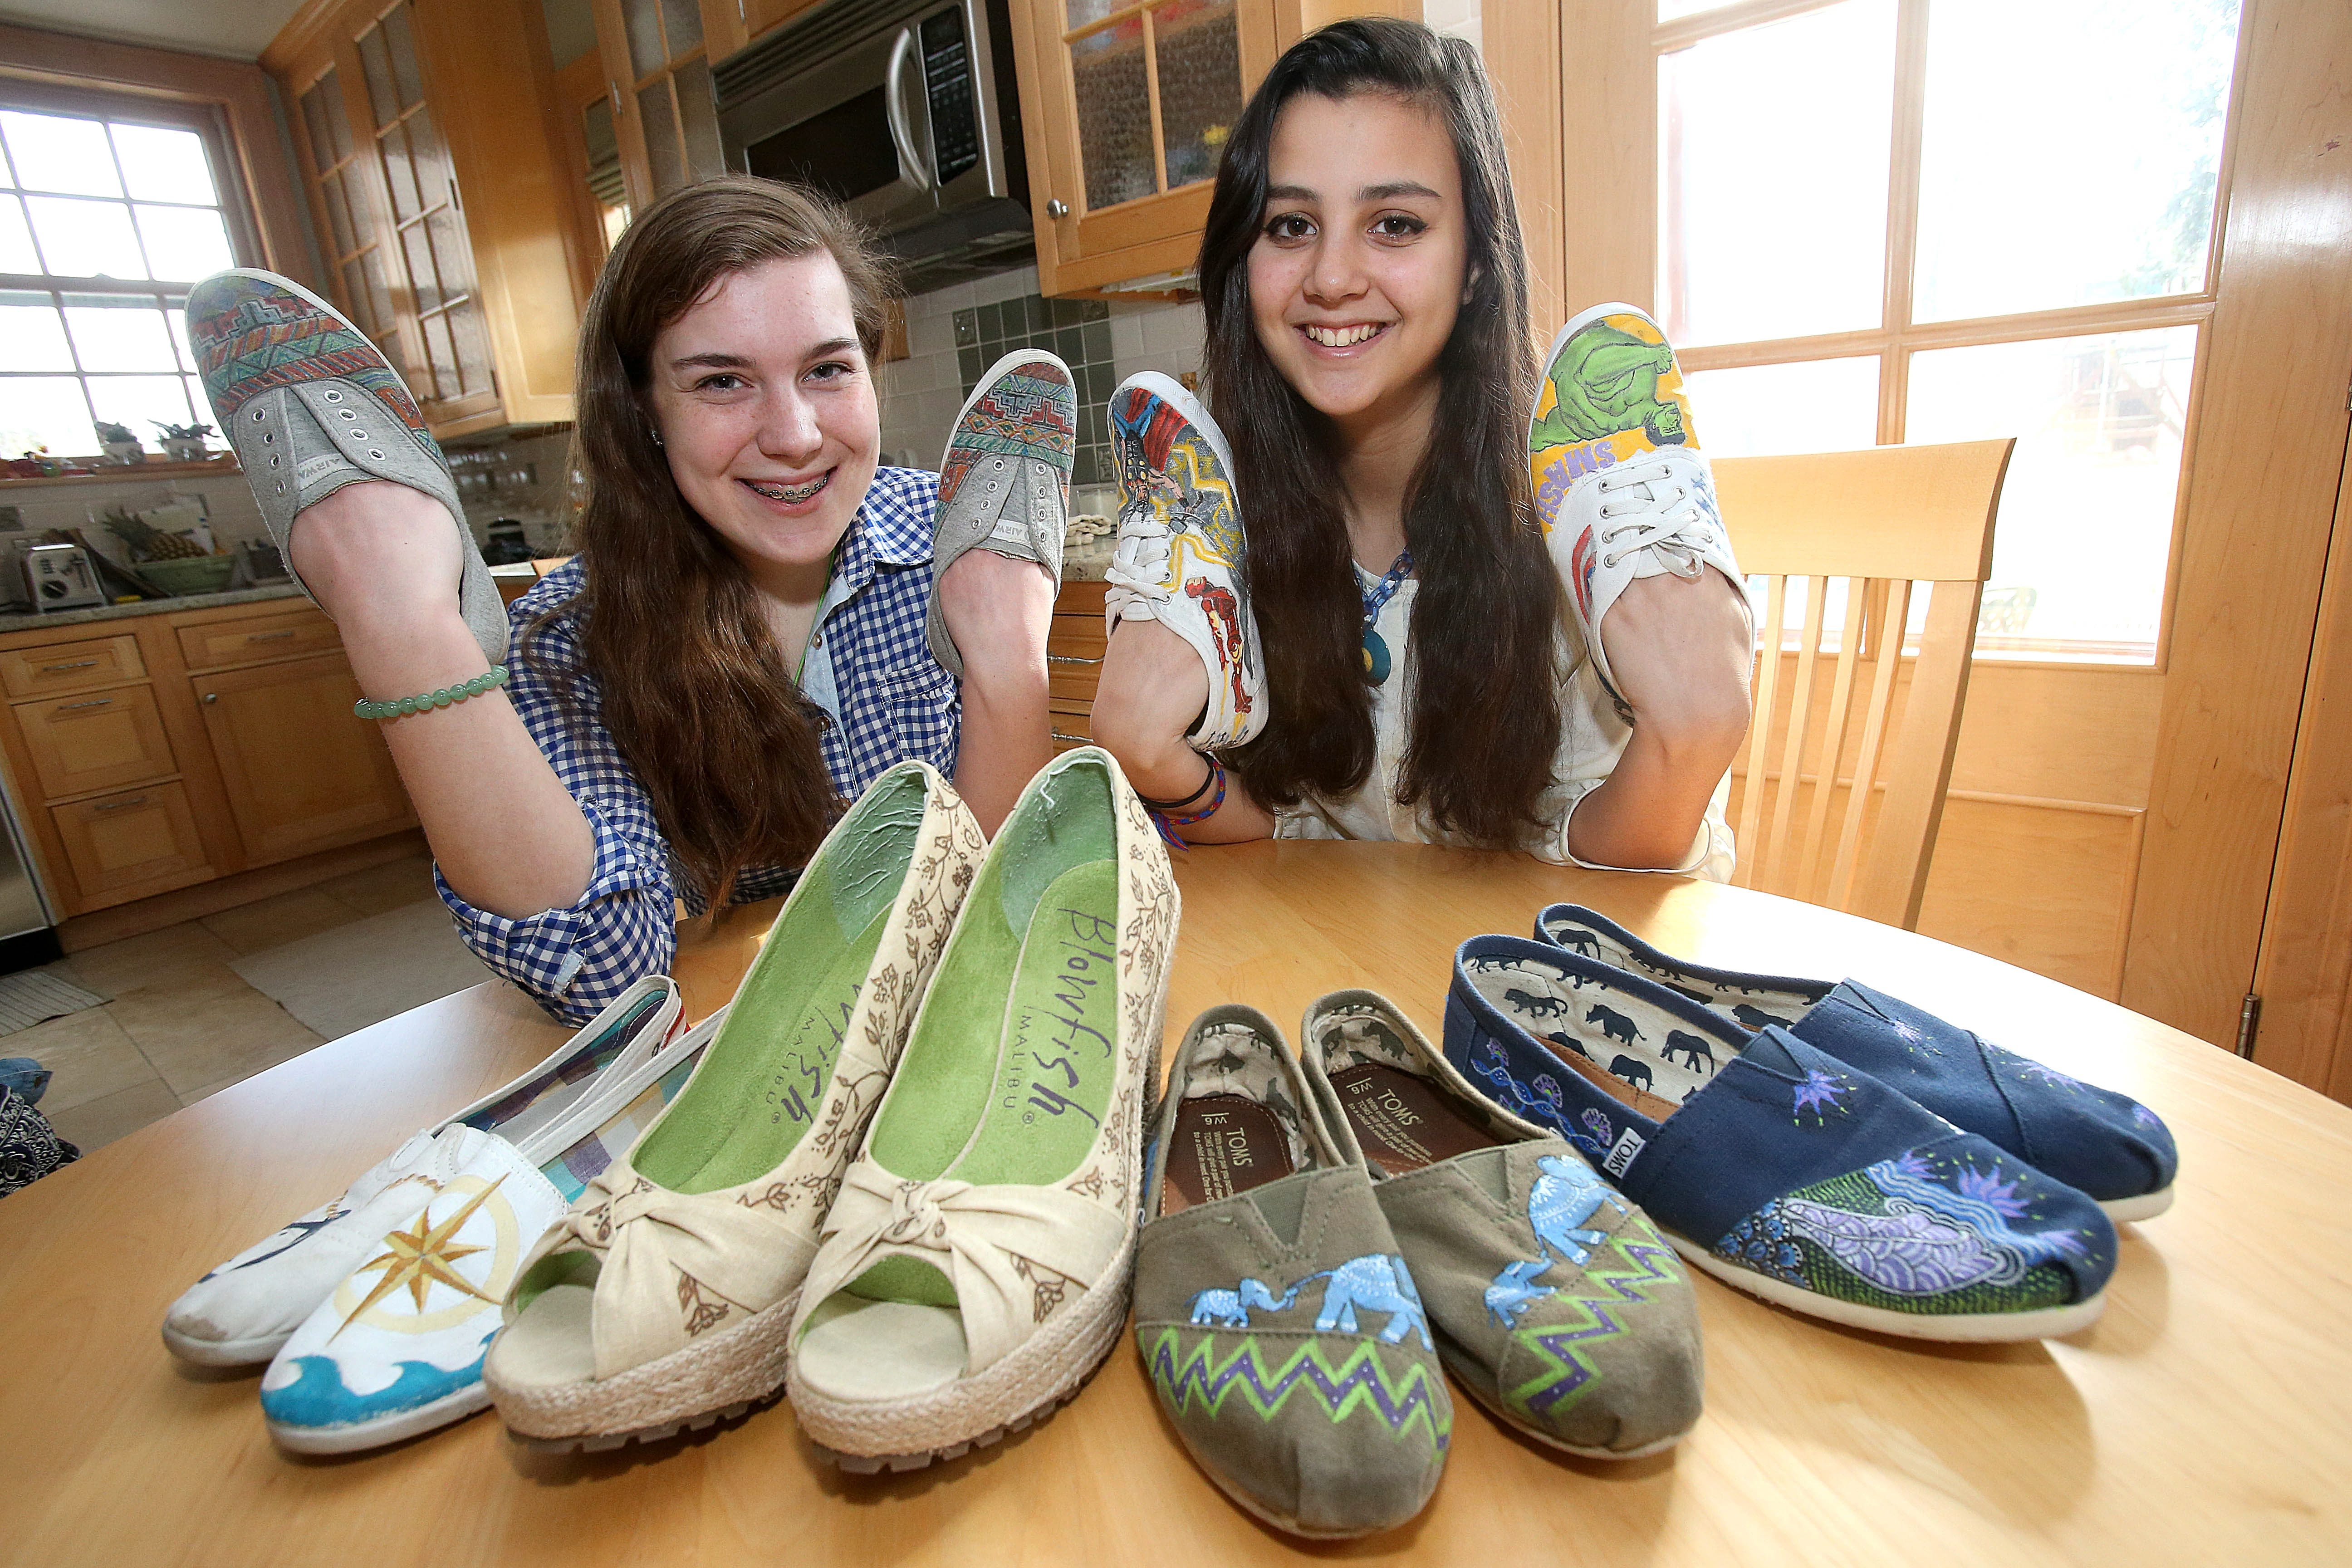 Nardin sophomore Clare Galbo, left, with friend and helper Annie Schenk, shows off some of the shoes she has painted designs on.